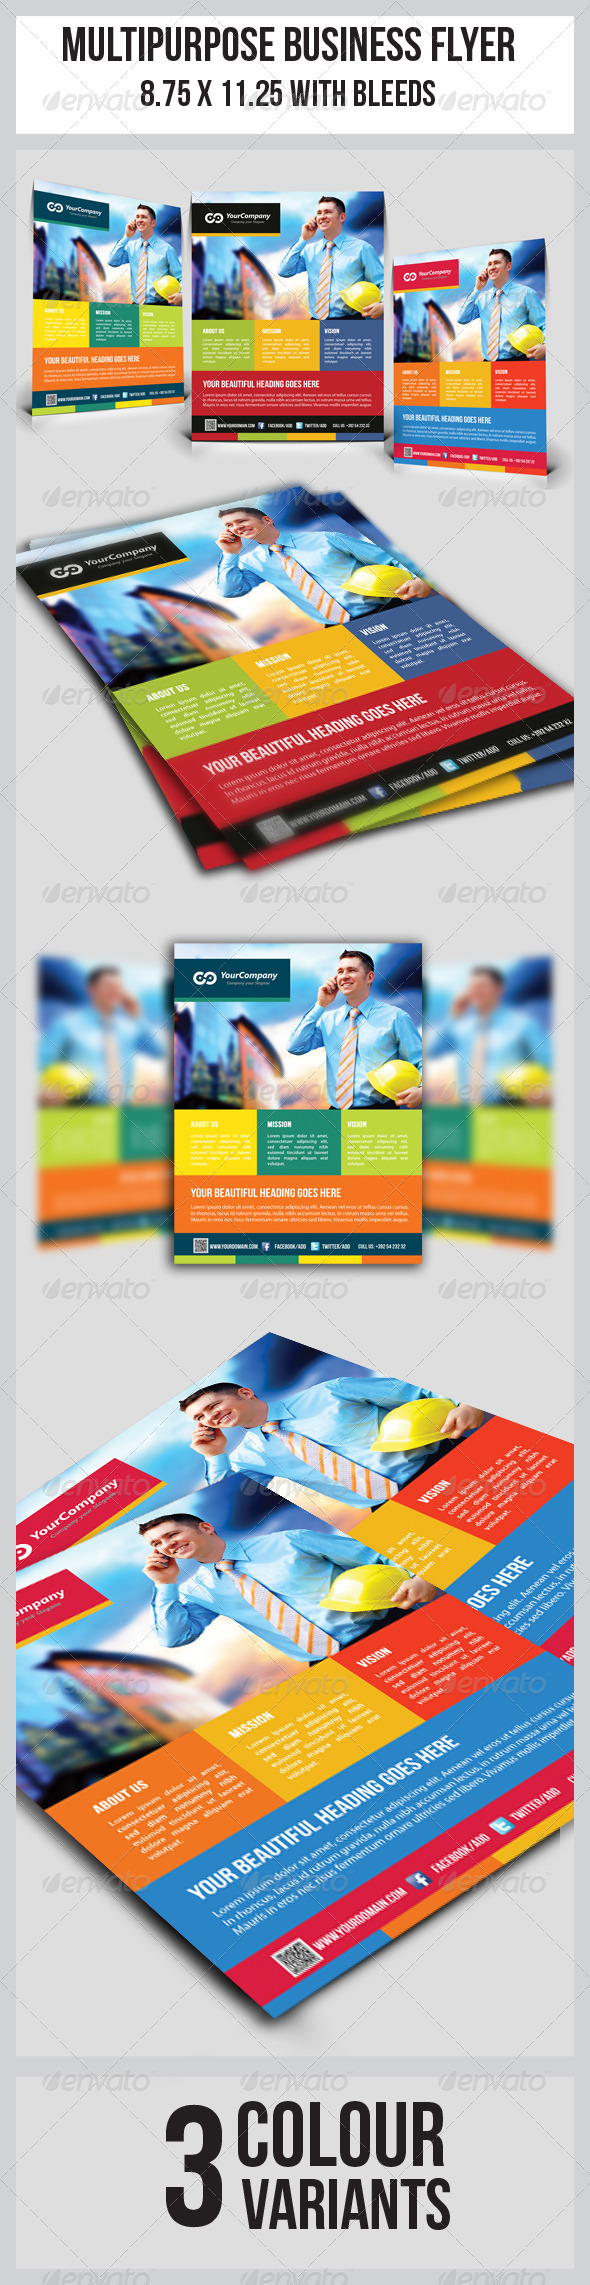 GraphicRiver Multipurpose Business Flyer 5046016